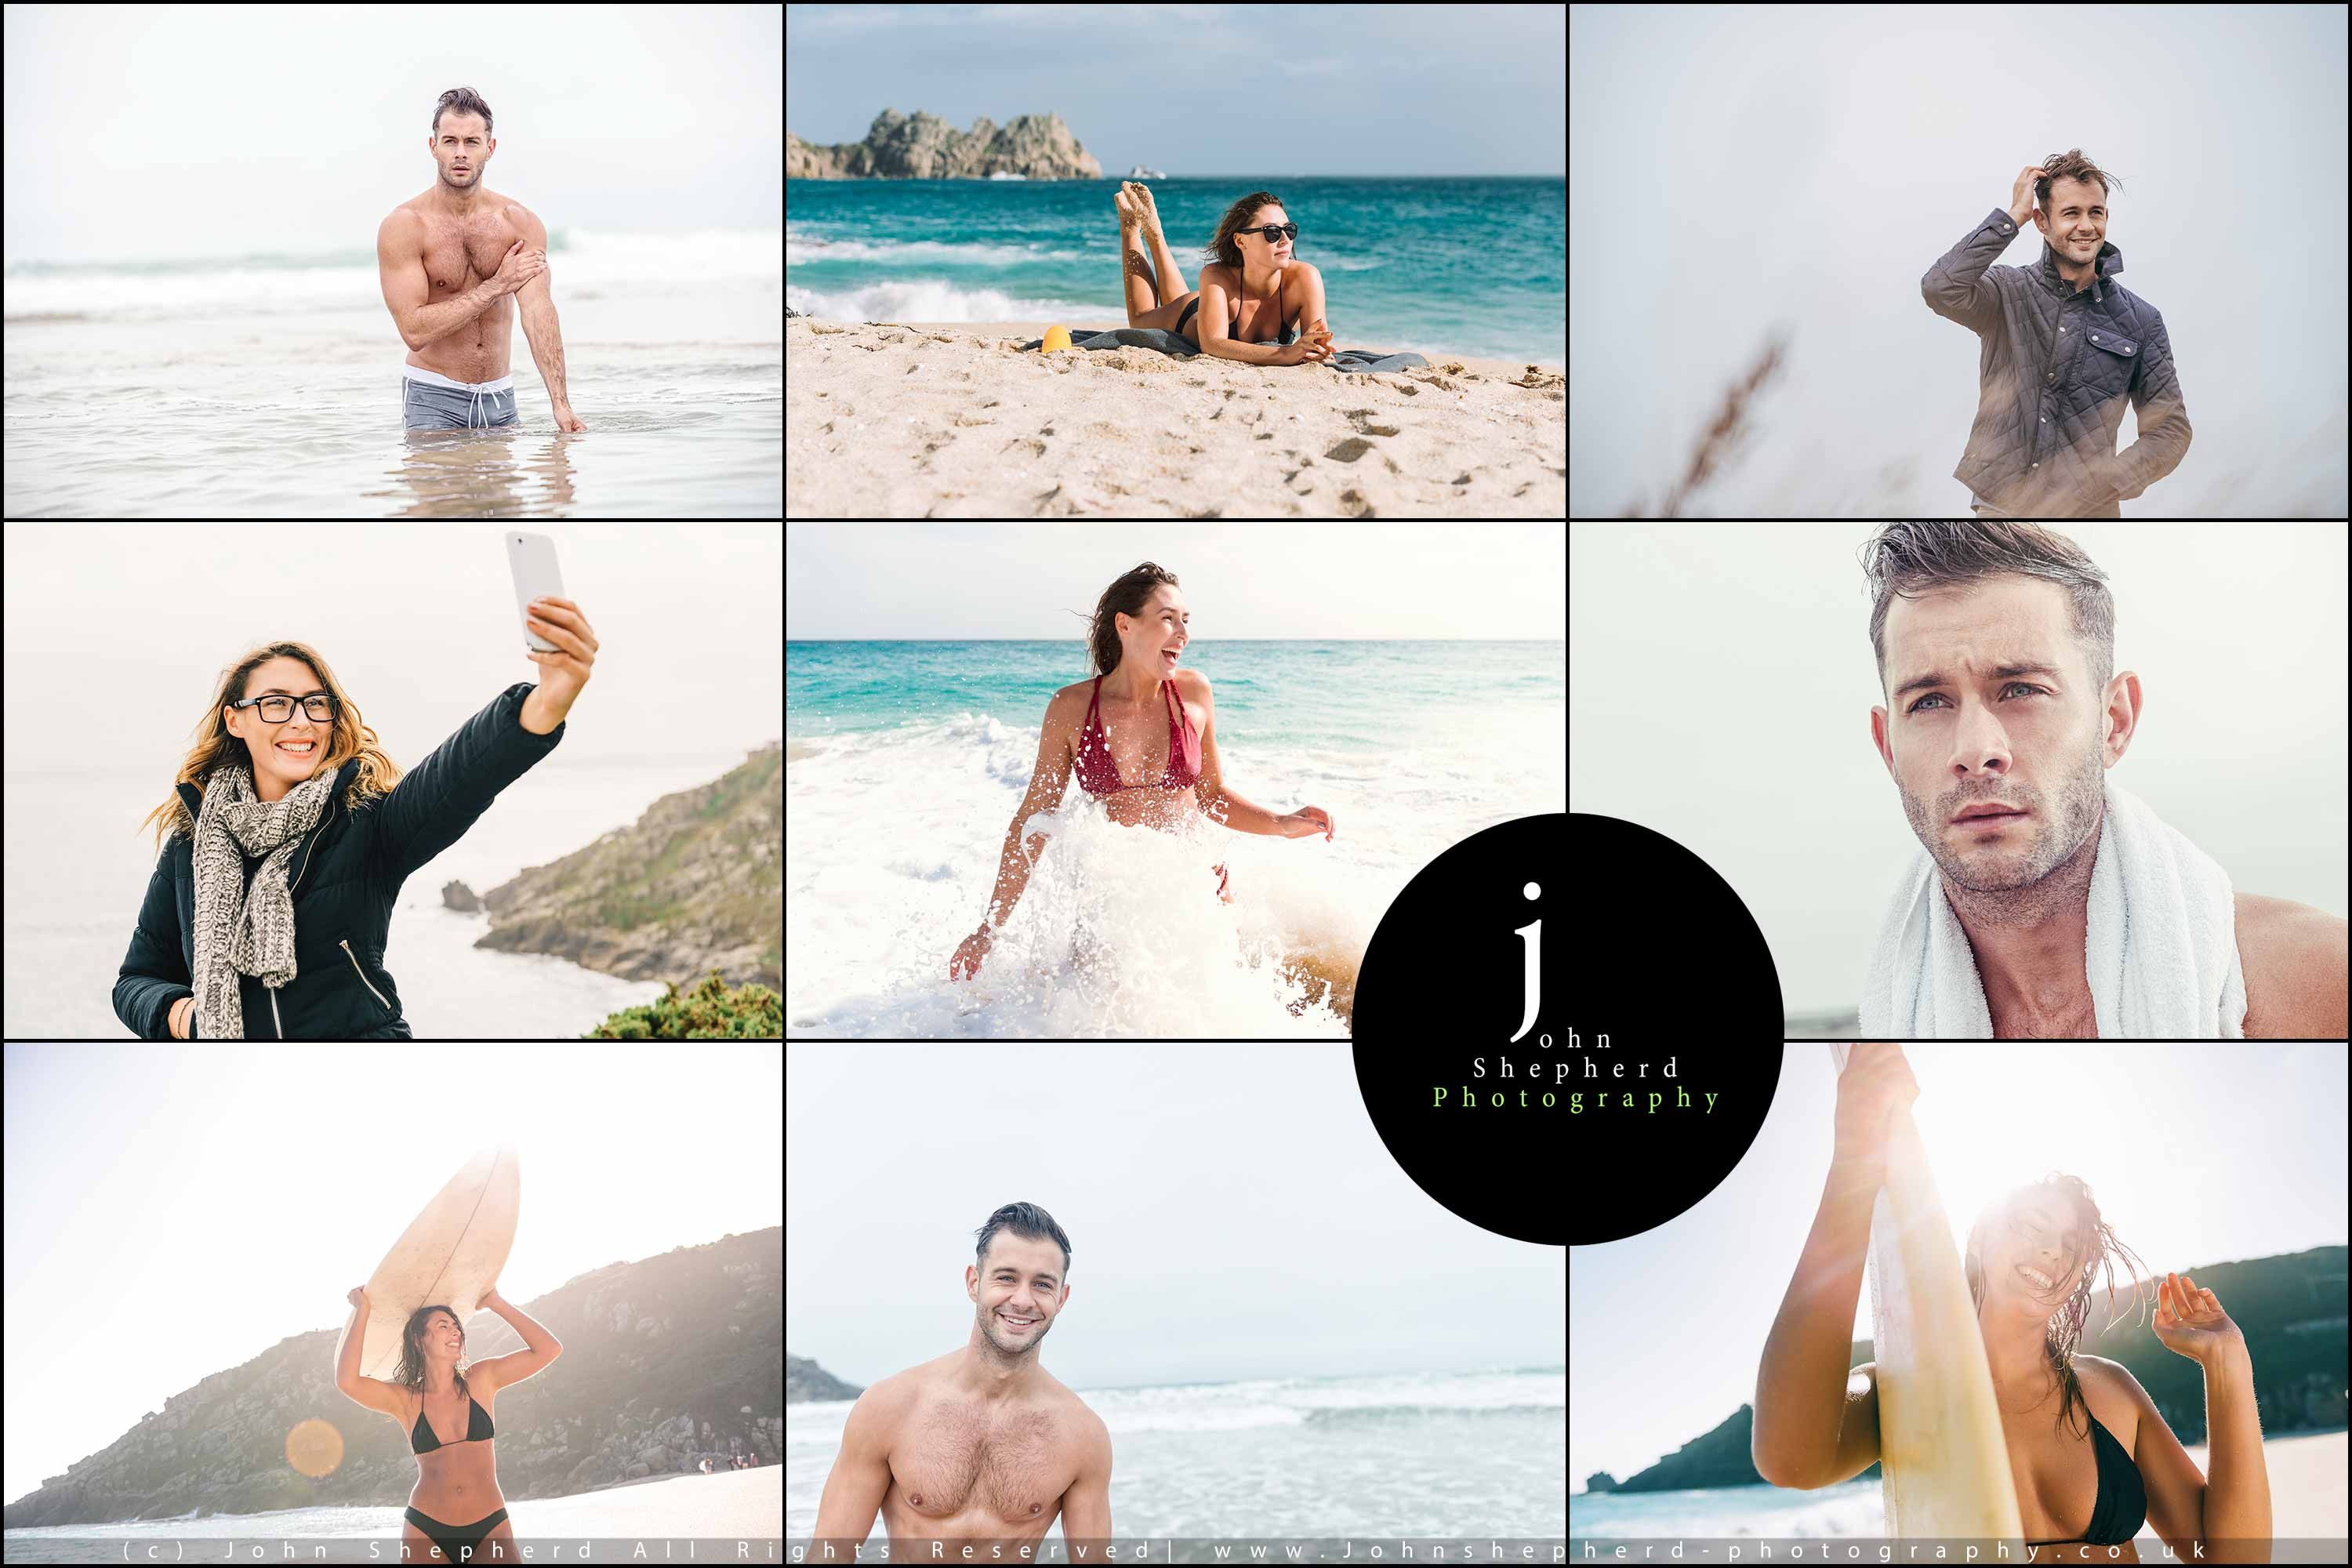 Cornwall Beach Lifestyle Photography.